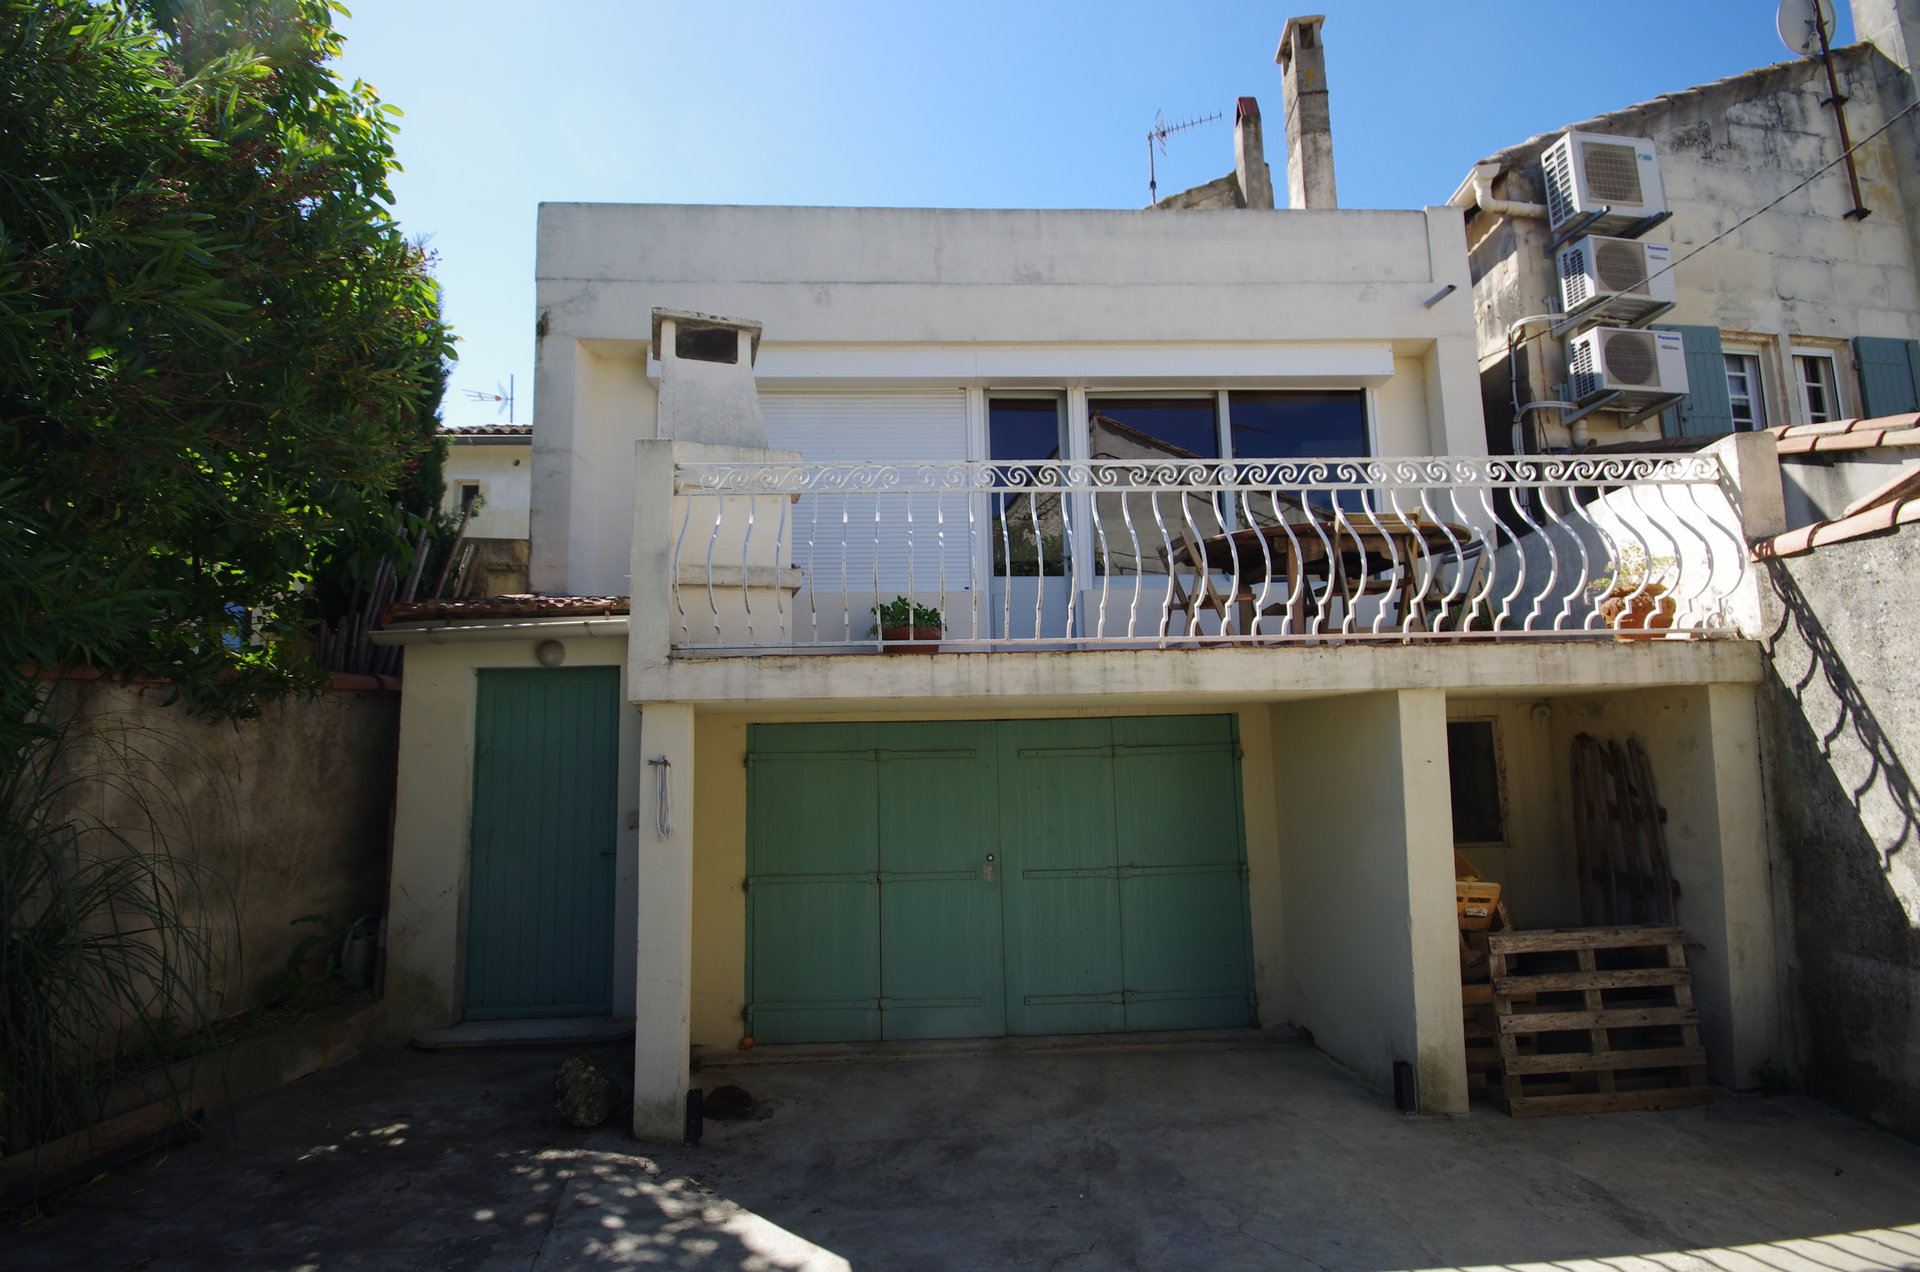 3 bedroom stone village house in the heart of Fontvieille